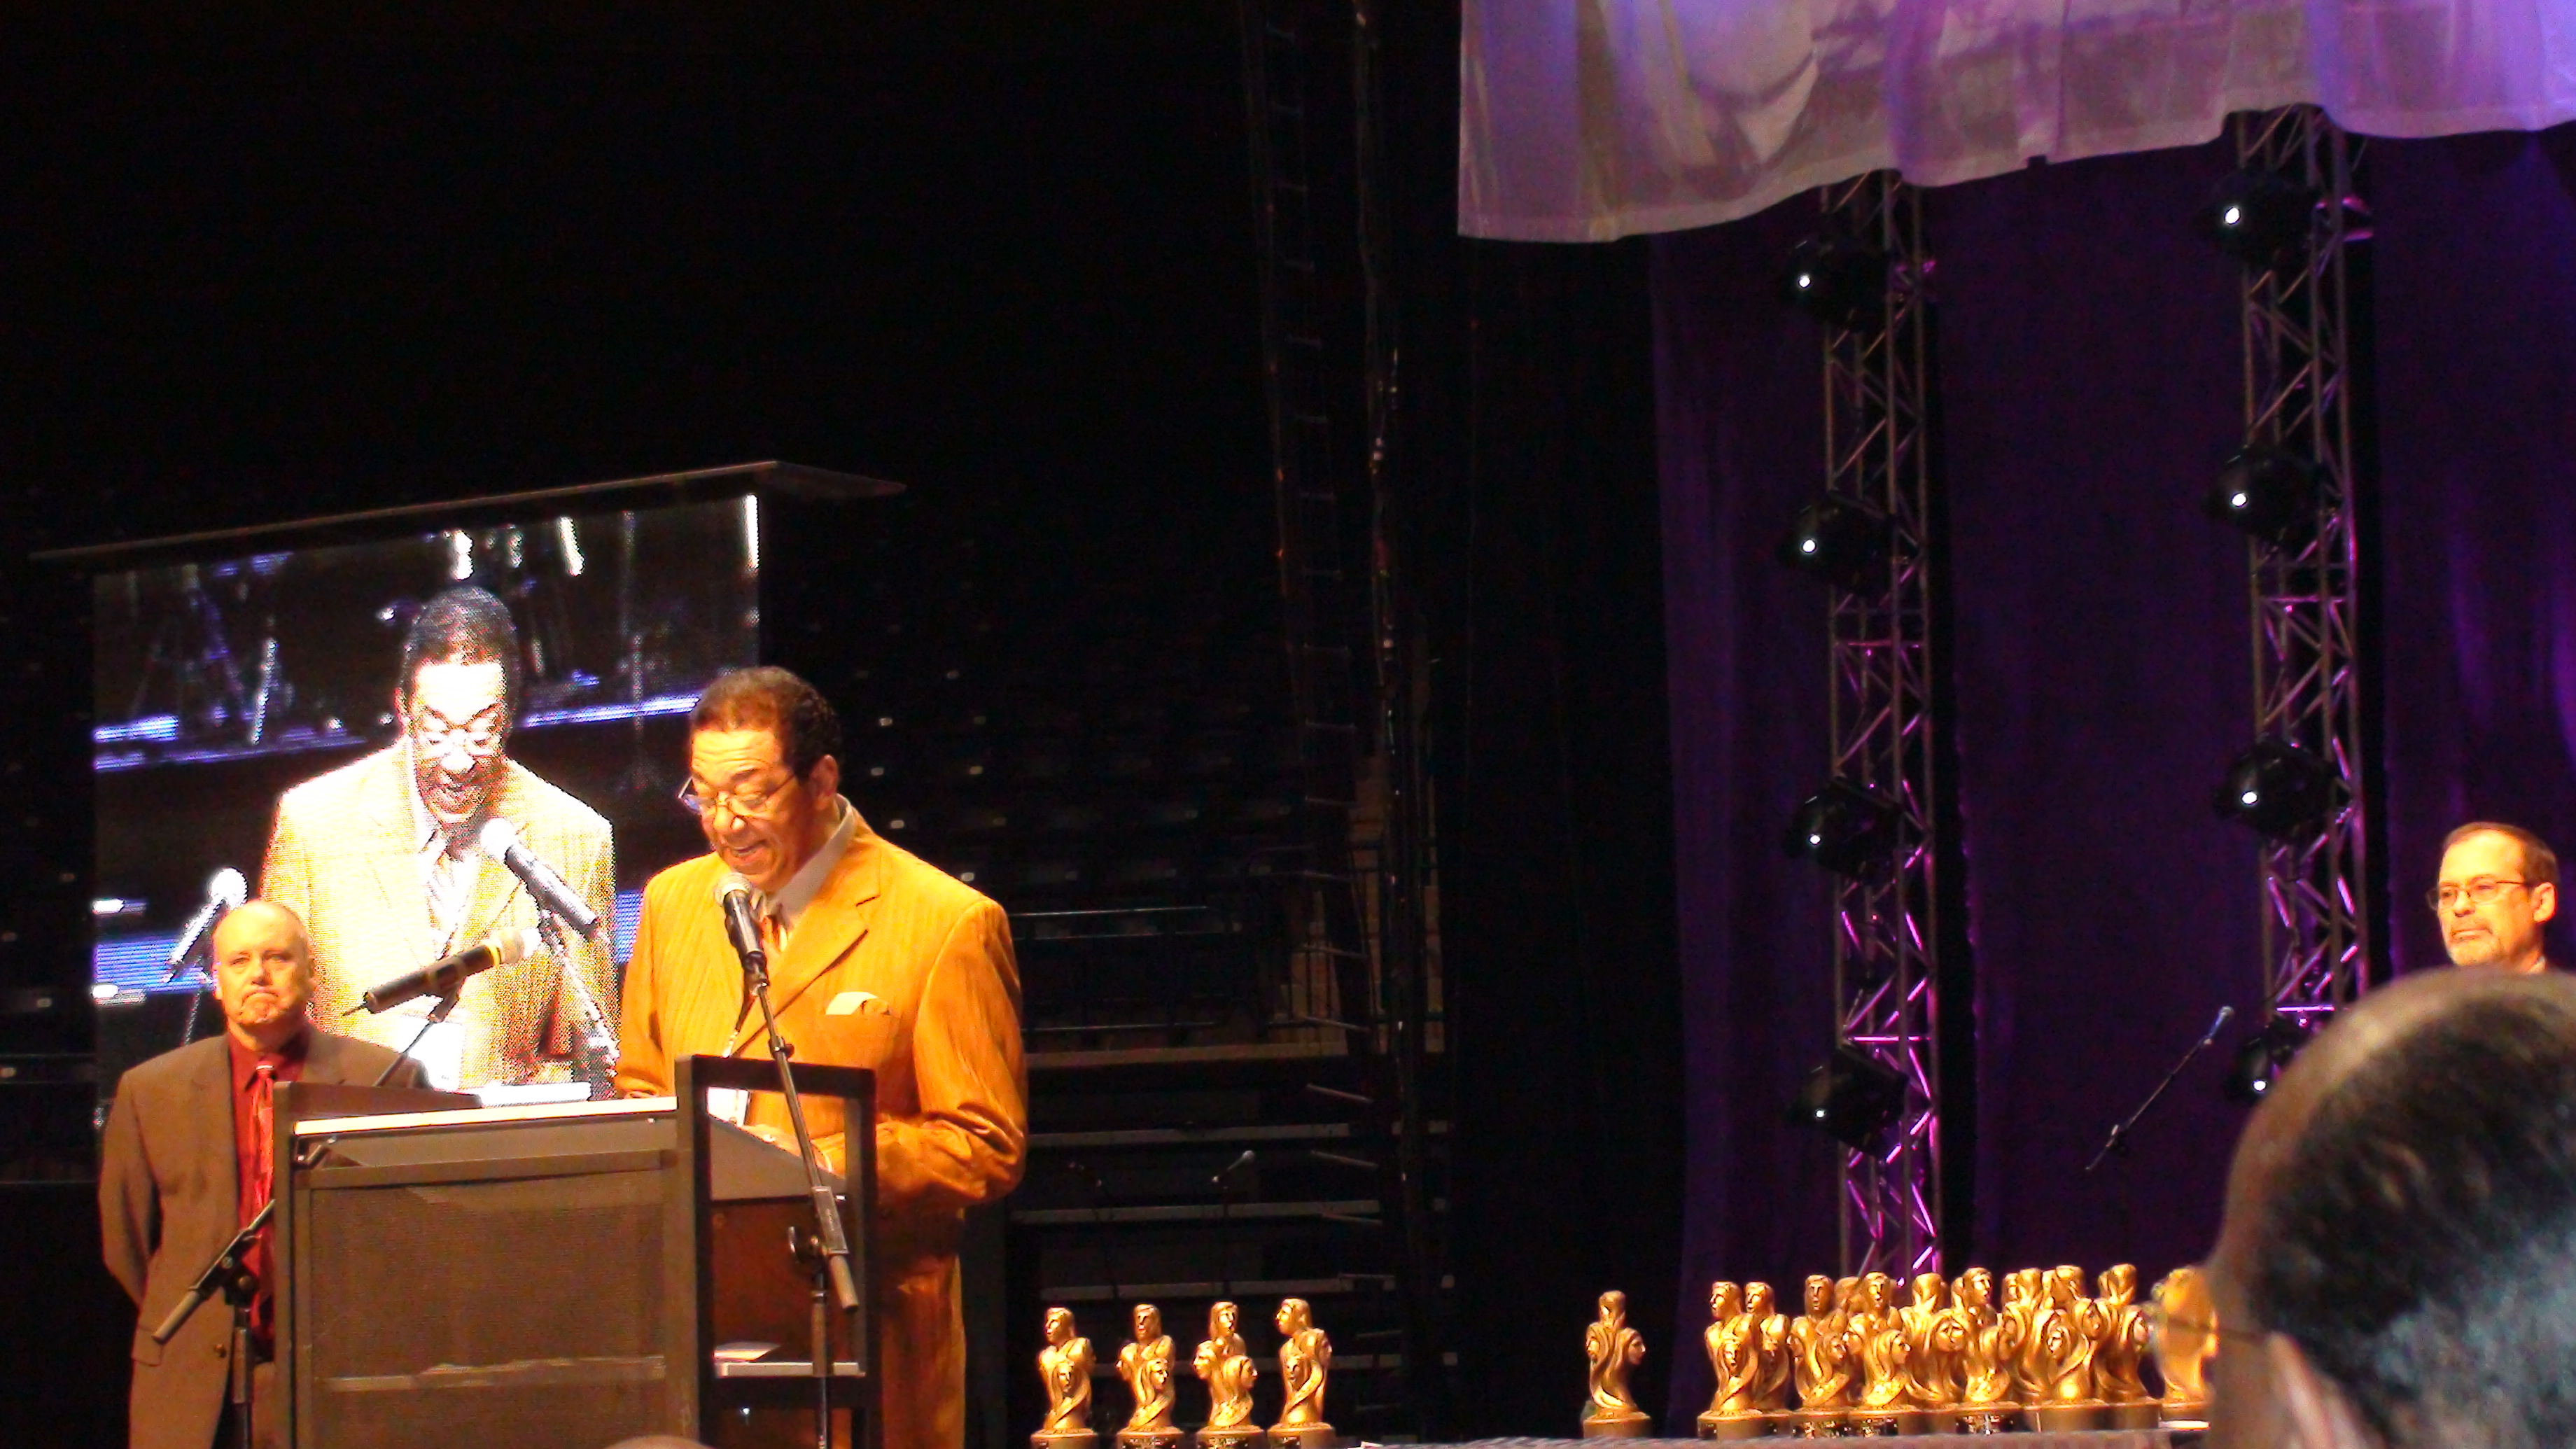 Terry inducting Sam Moore of Sam & Dave into the Vocal Group Hall of Fame